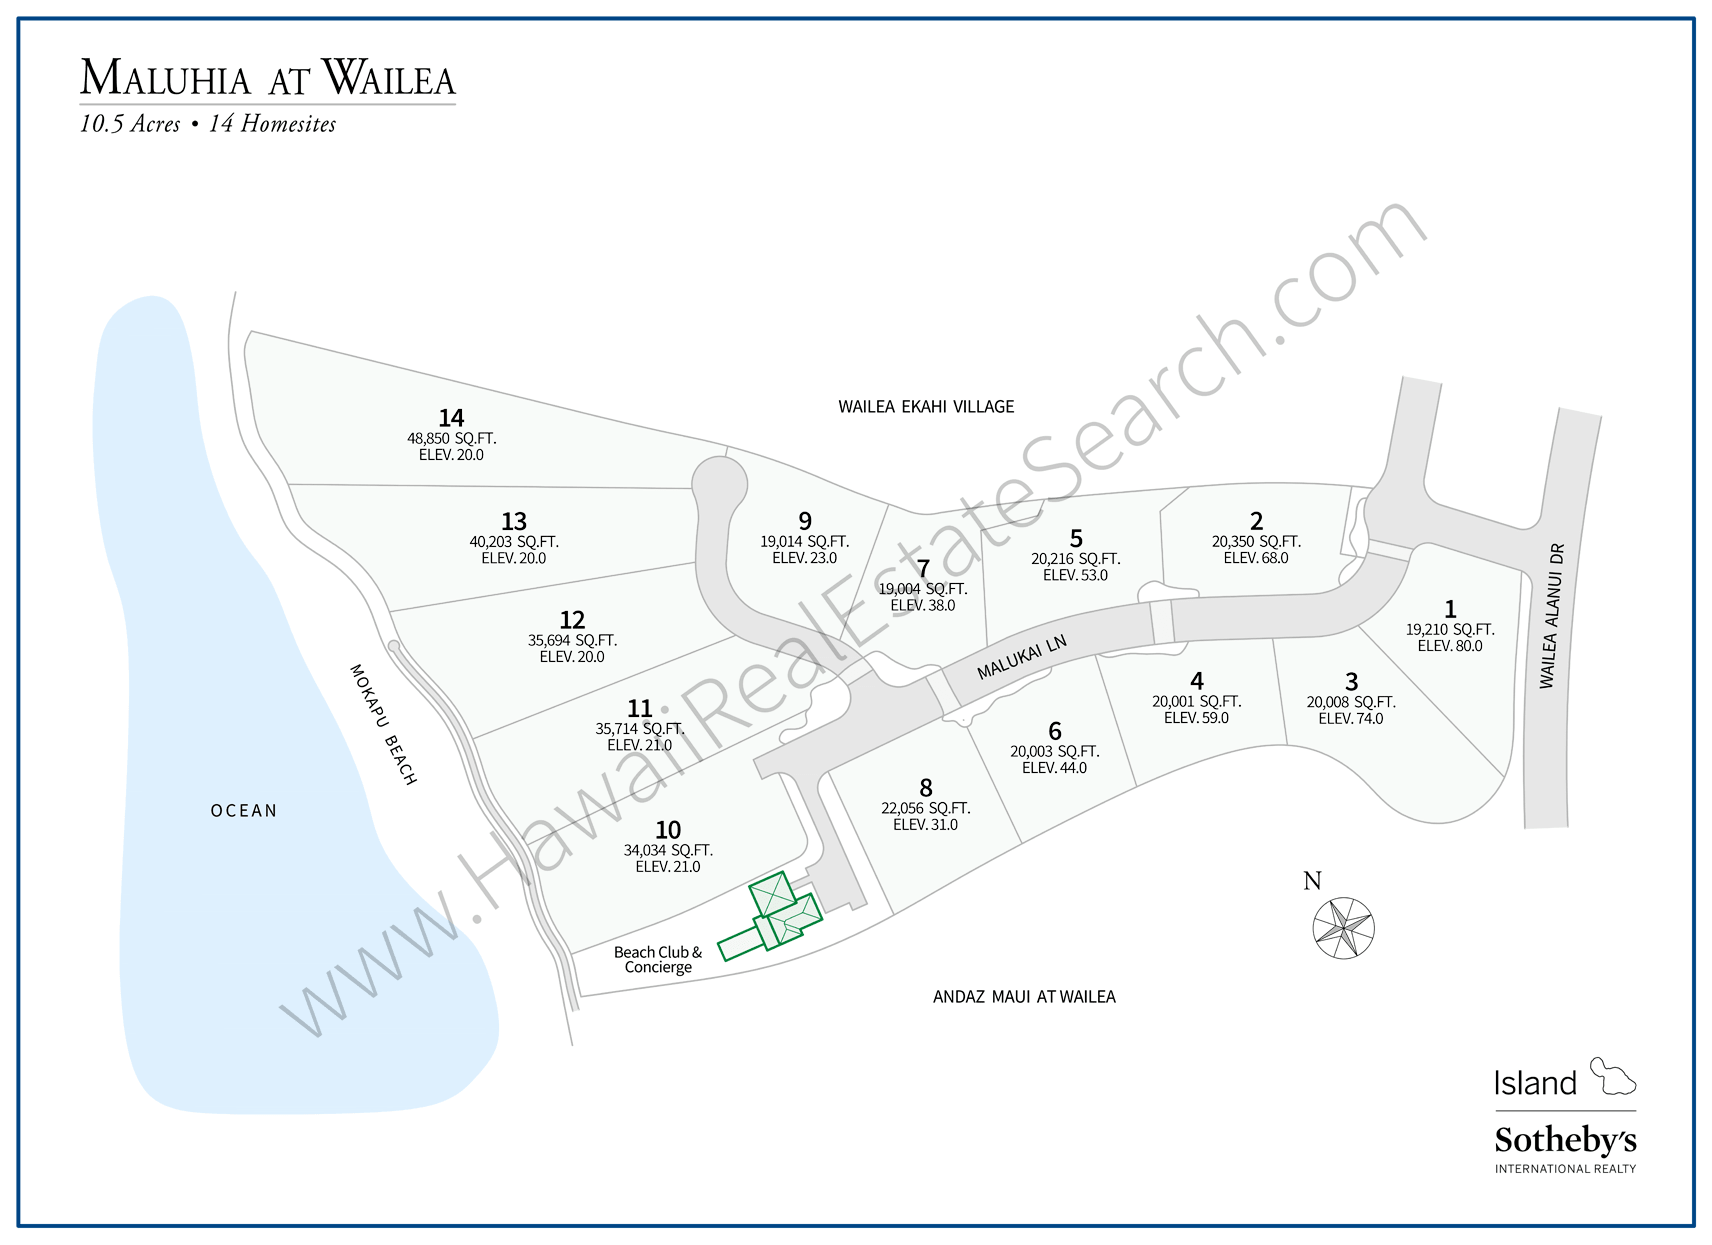 Maluhia at Wailea Map Updated